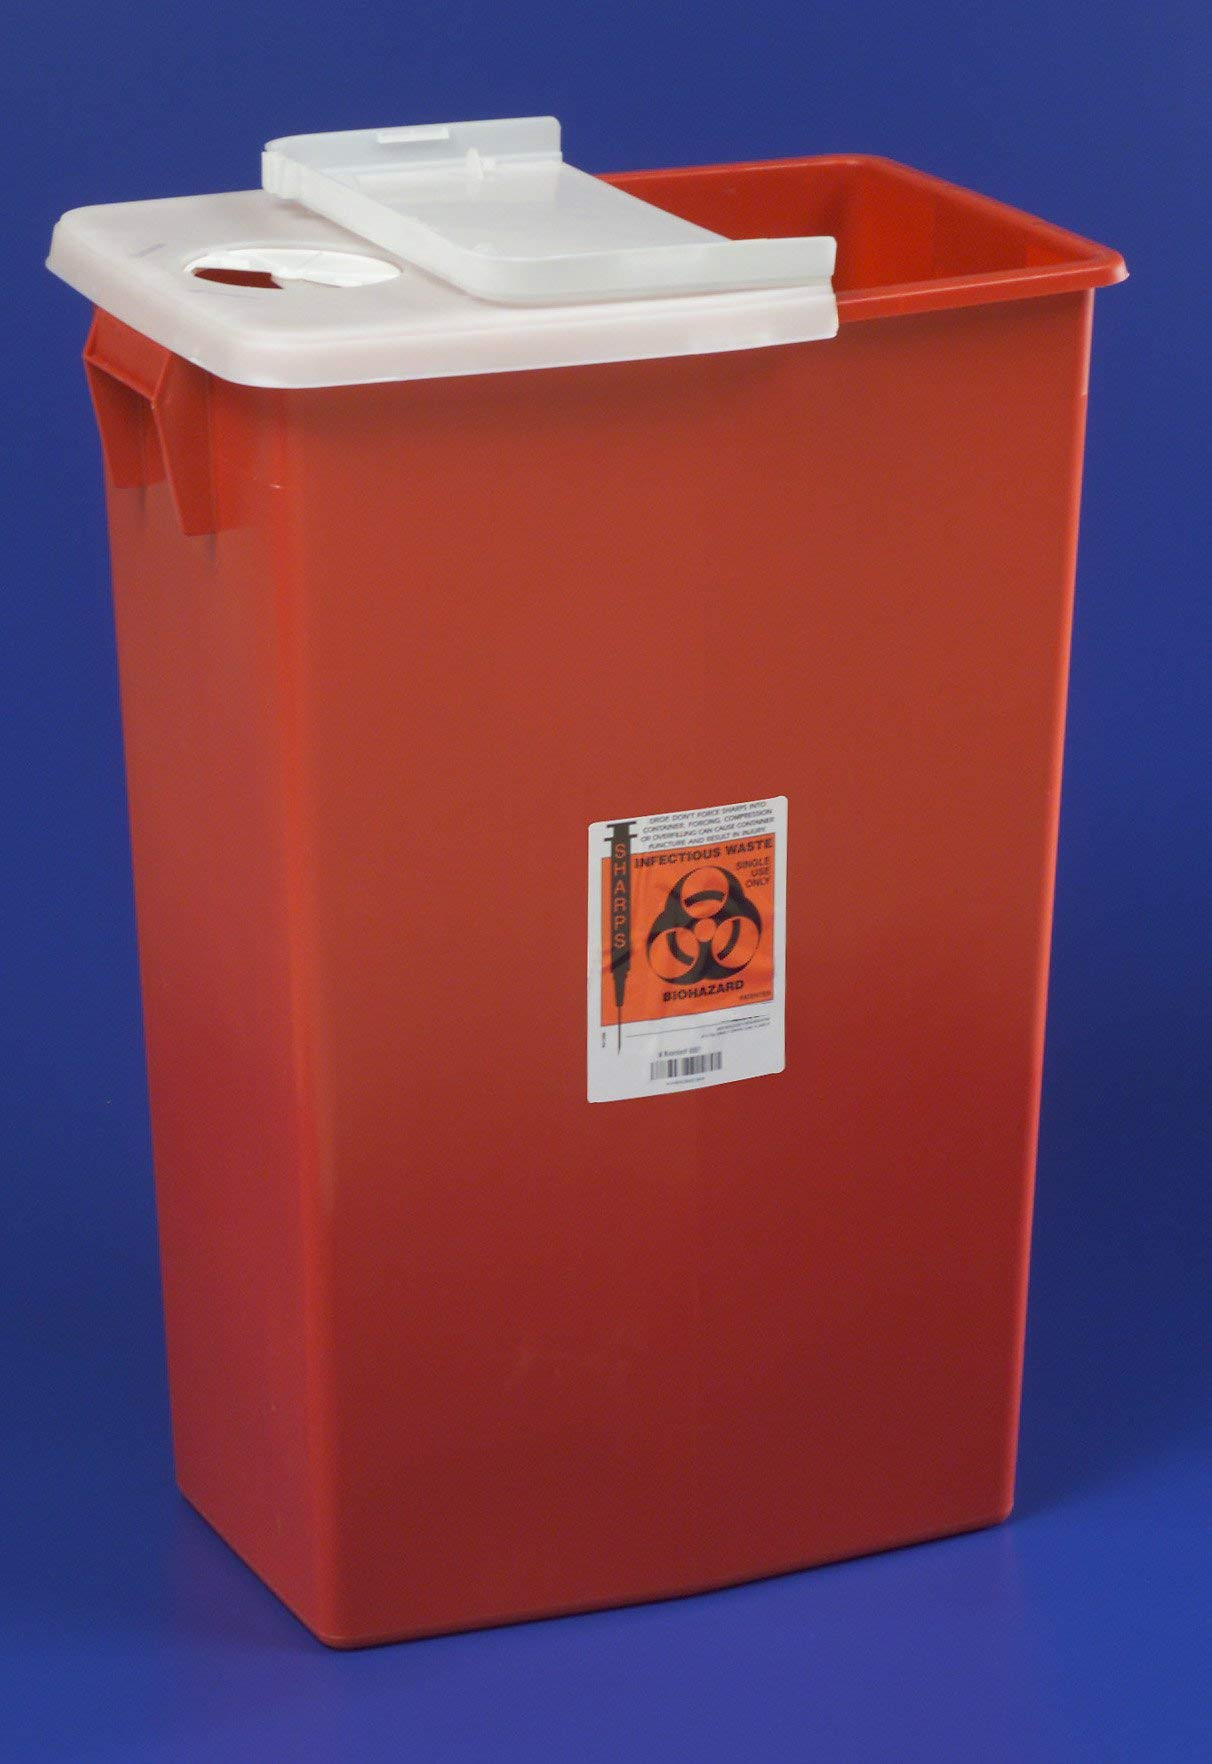 Sharps Container, SharpSafety 1-Piece 26 H X 18-1/4 W X 12-3/4 D Inch 18 Gallon Red Hinged Lid, 8991 - Each by Ensur